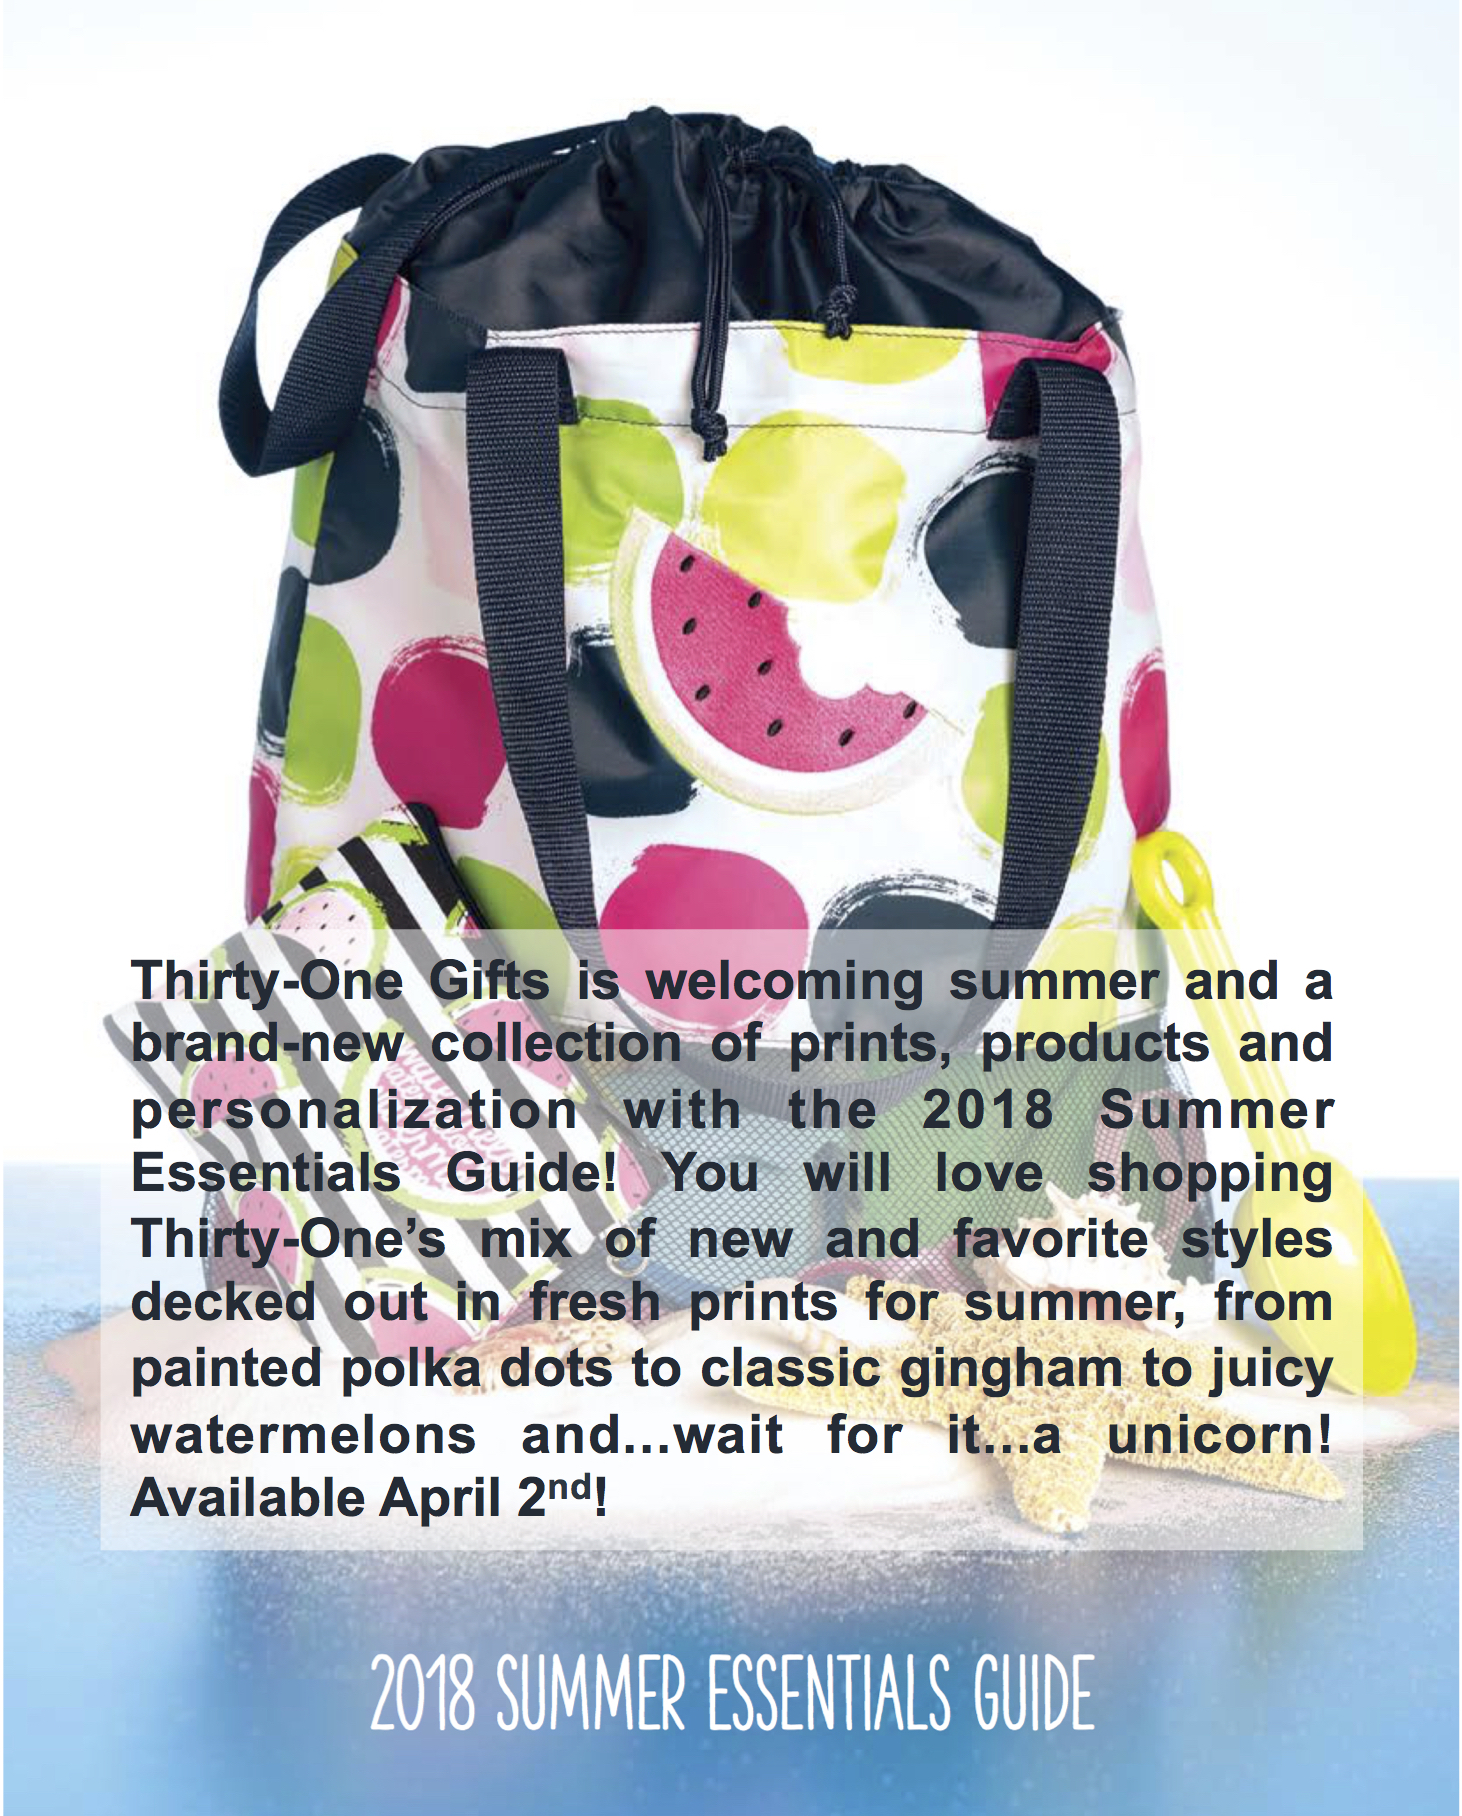 Thirty-One Gifts - Summer Essentials